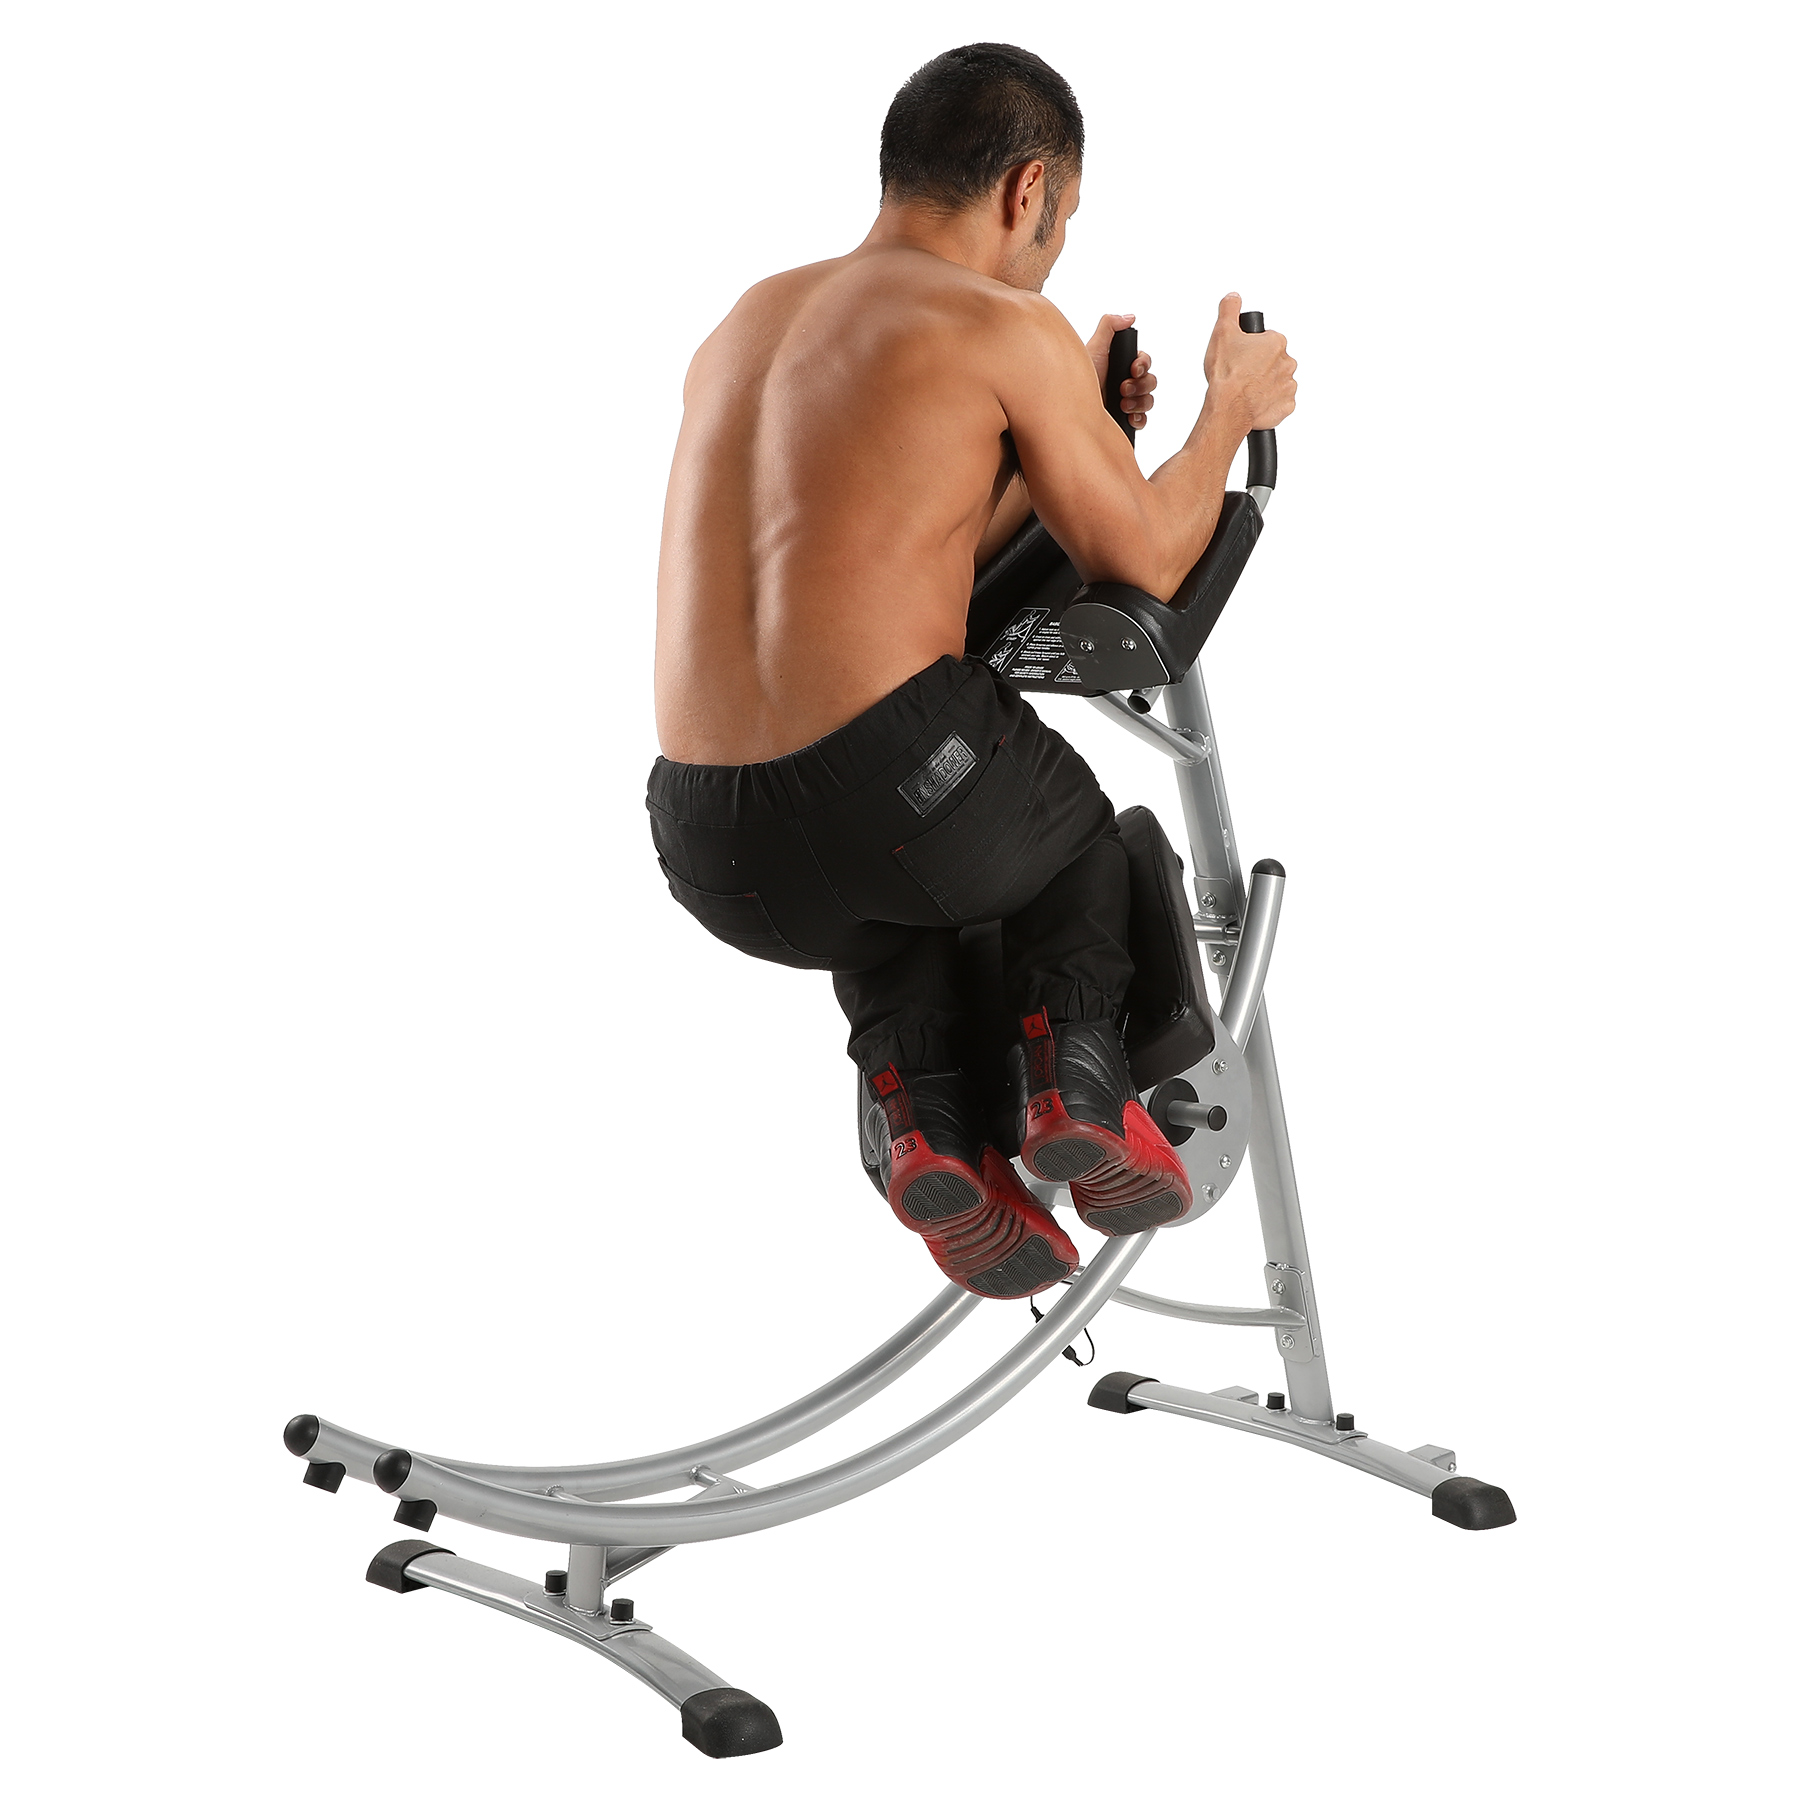 Abdominal Coaster Trainer Abdomen Abdominal Machine Fitness Equipment